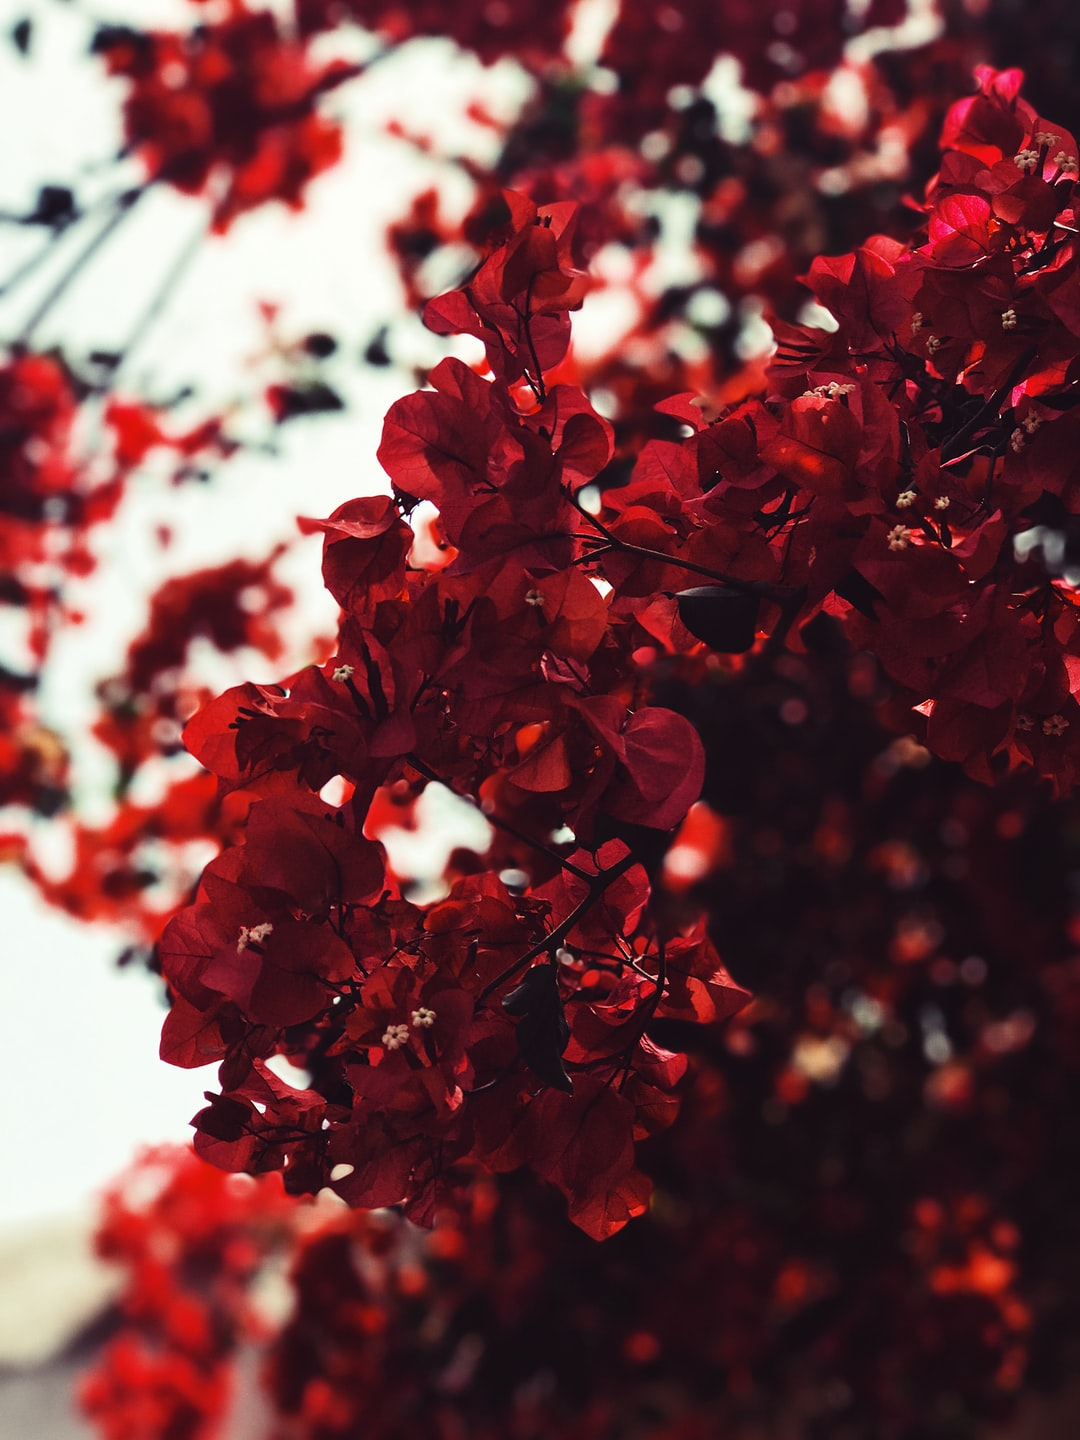 Red Leaves Photo Free Red Image On Unsplash